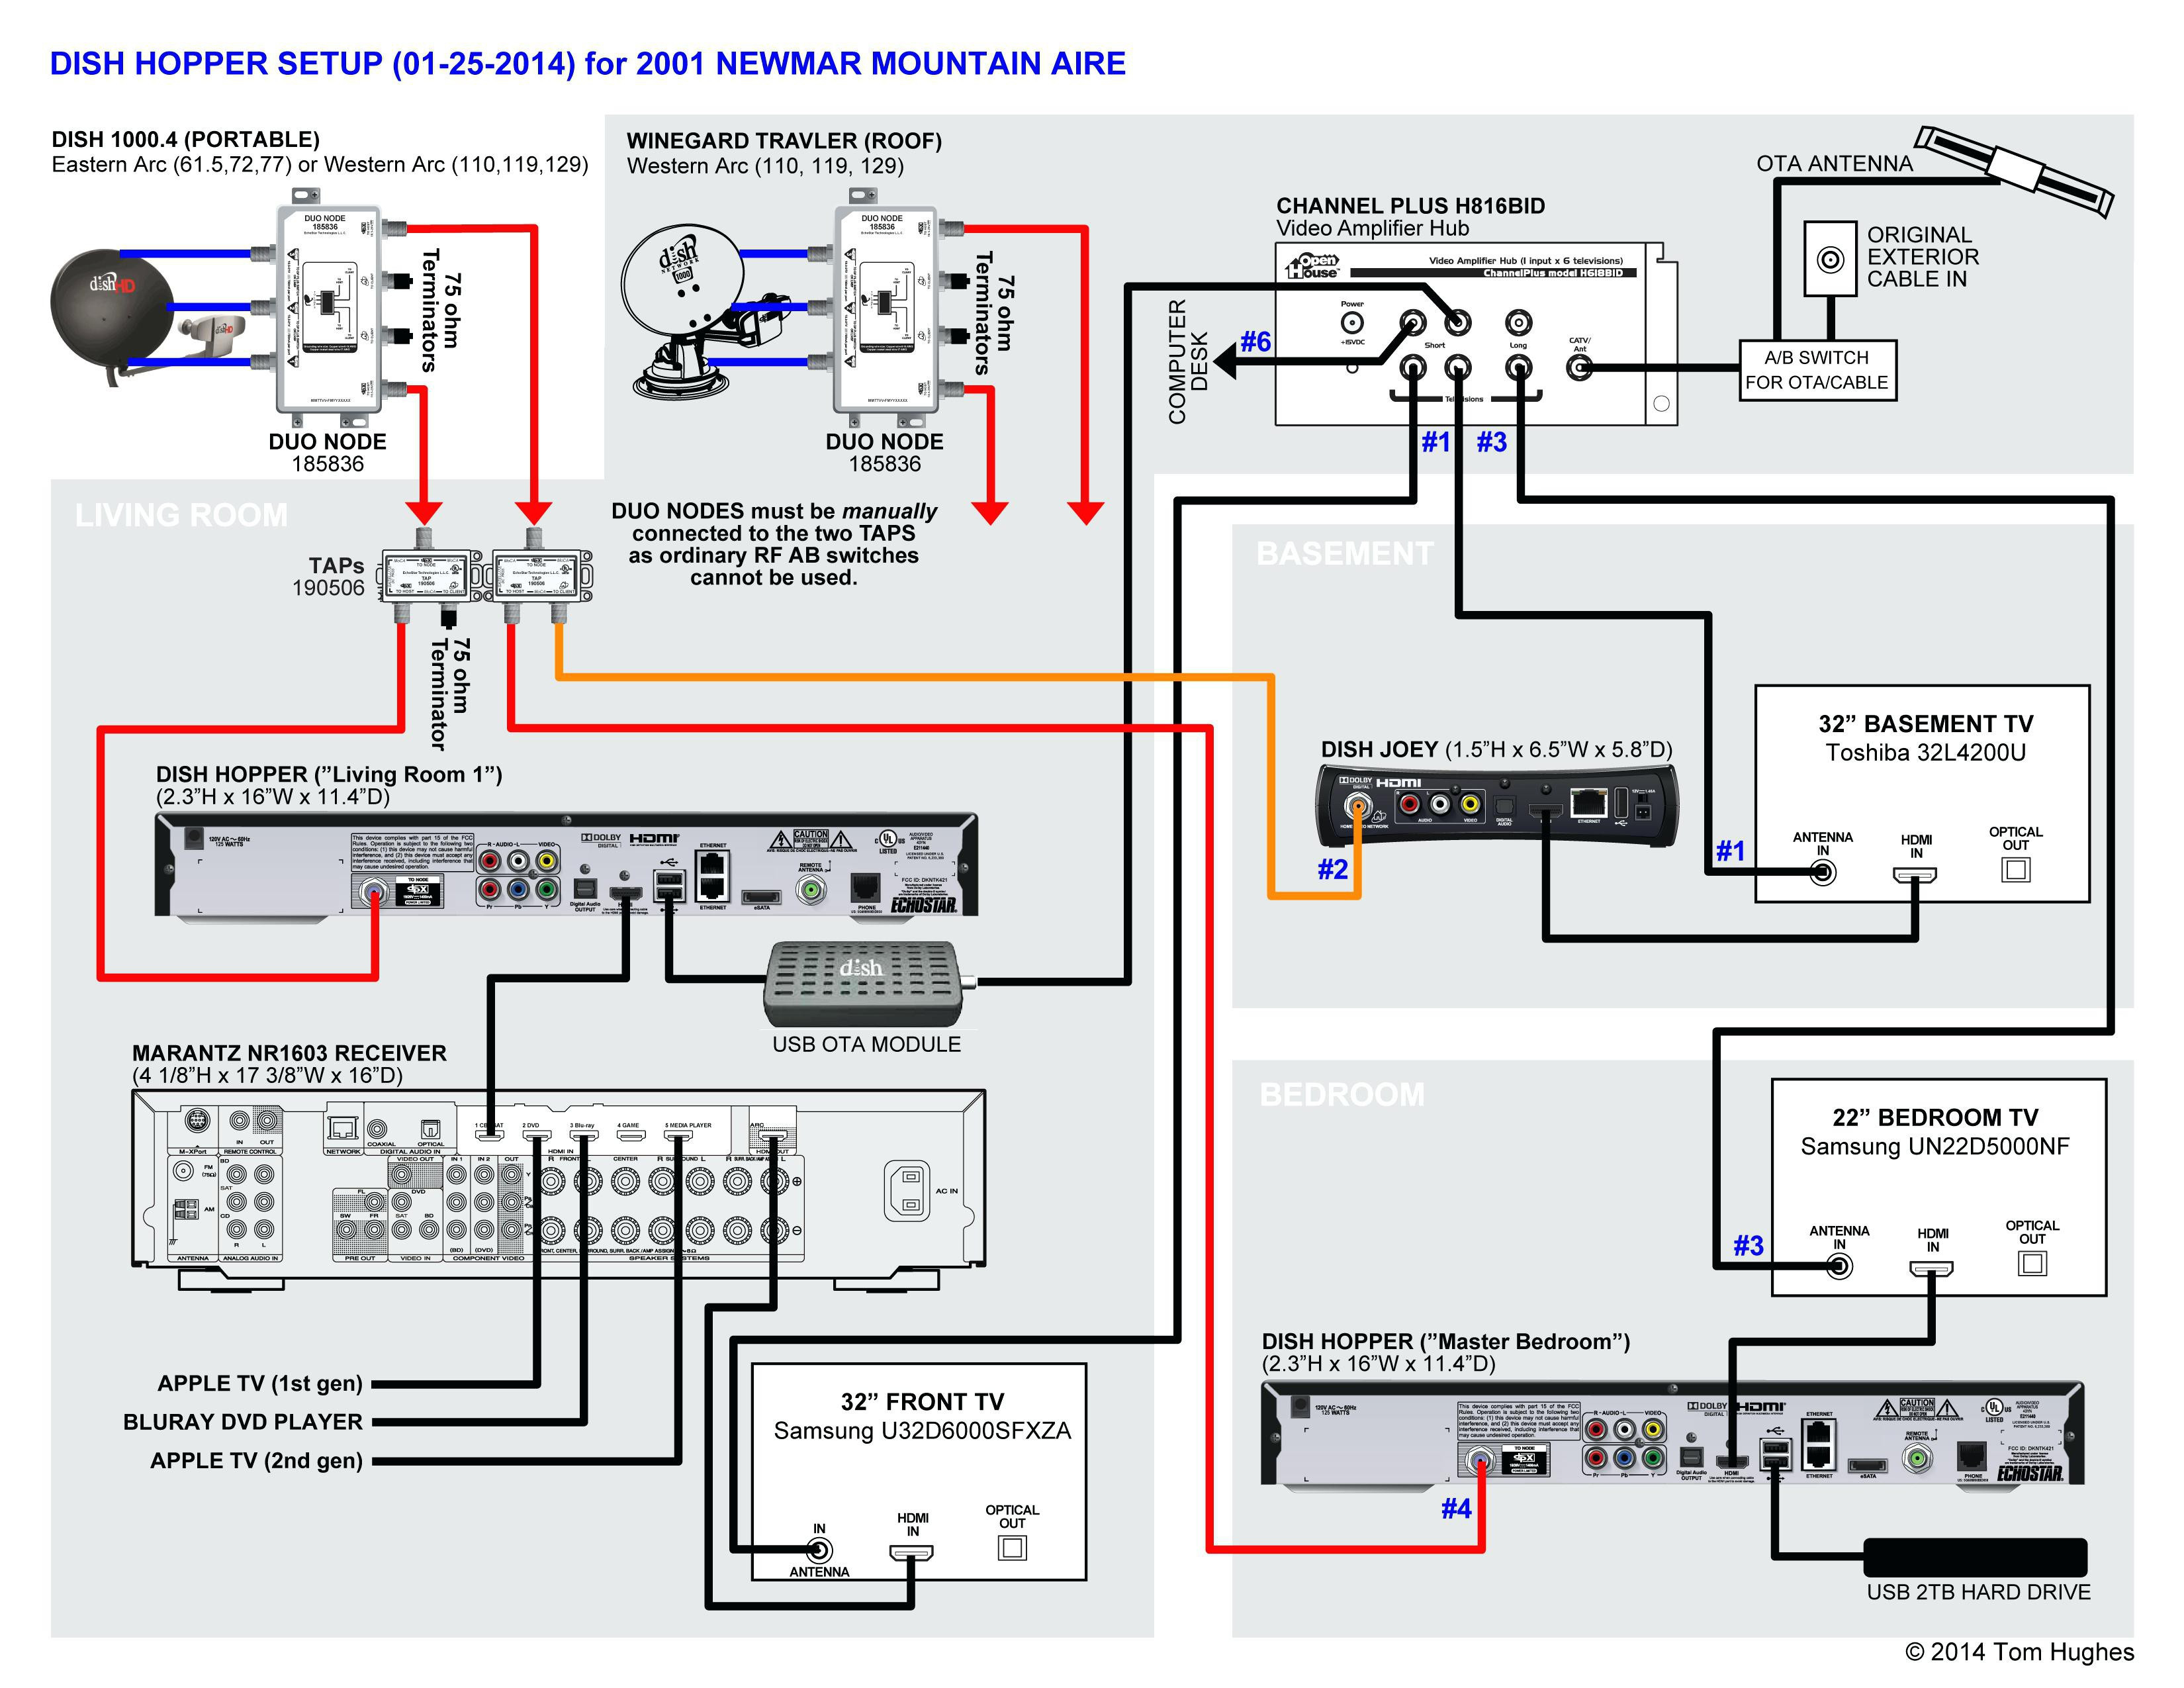 Dish 722 Receiver Wiring Diagram | Wiring Diagram - Dish Vip722K Wiring Diagram